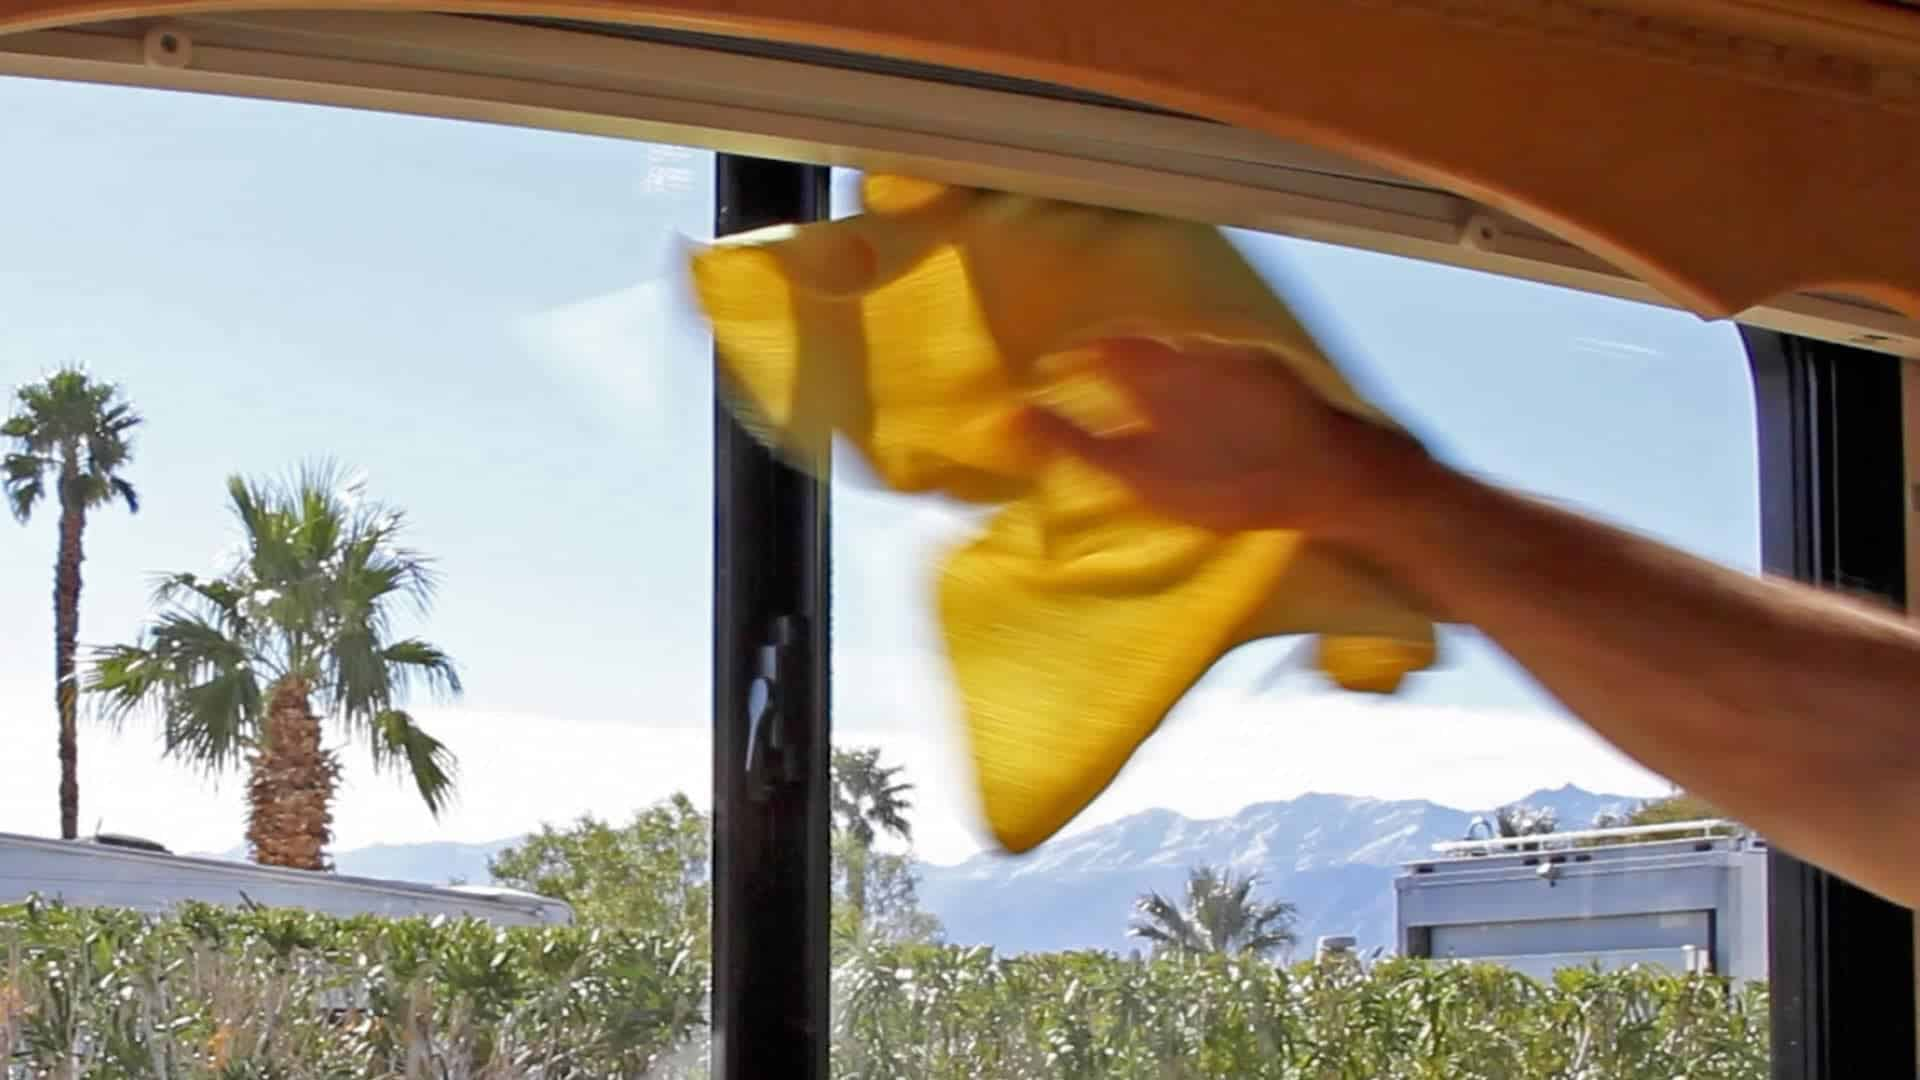 Clean Your RV Windows & Mirrors Super Fast (no window cleaner needed!)